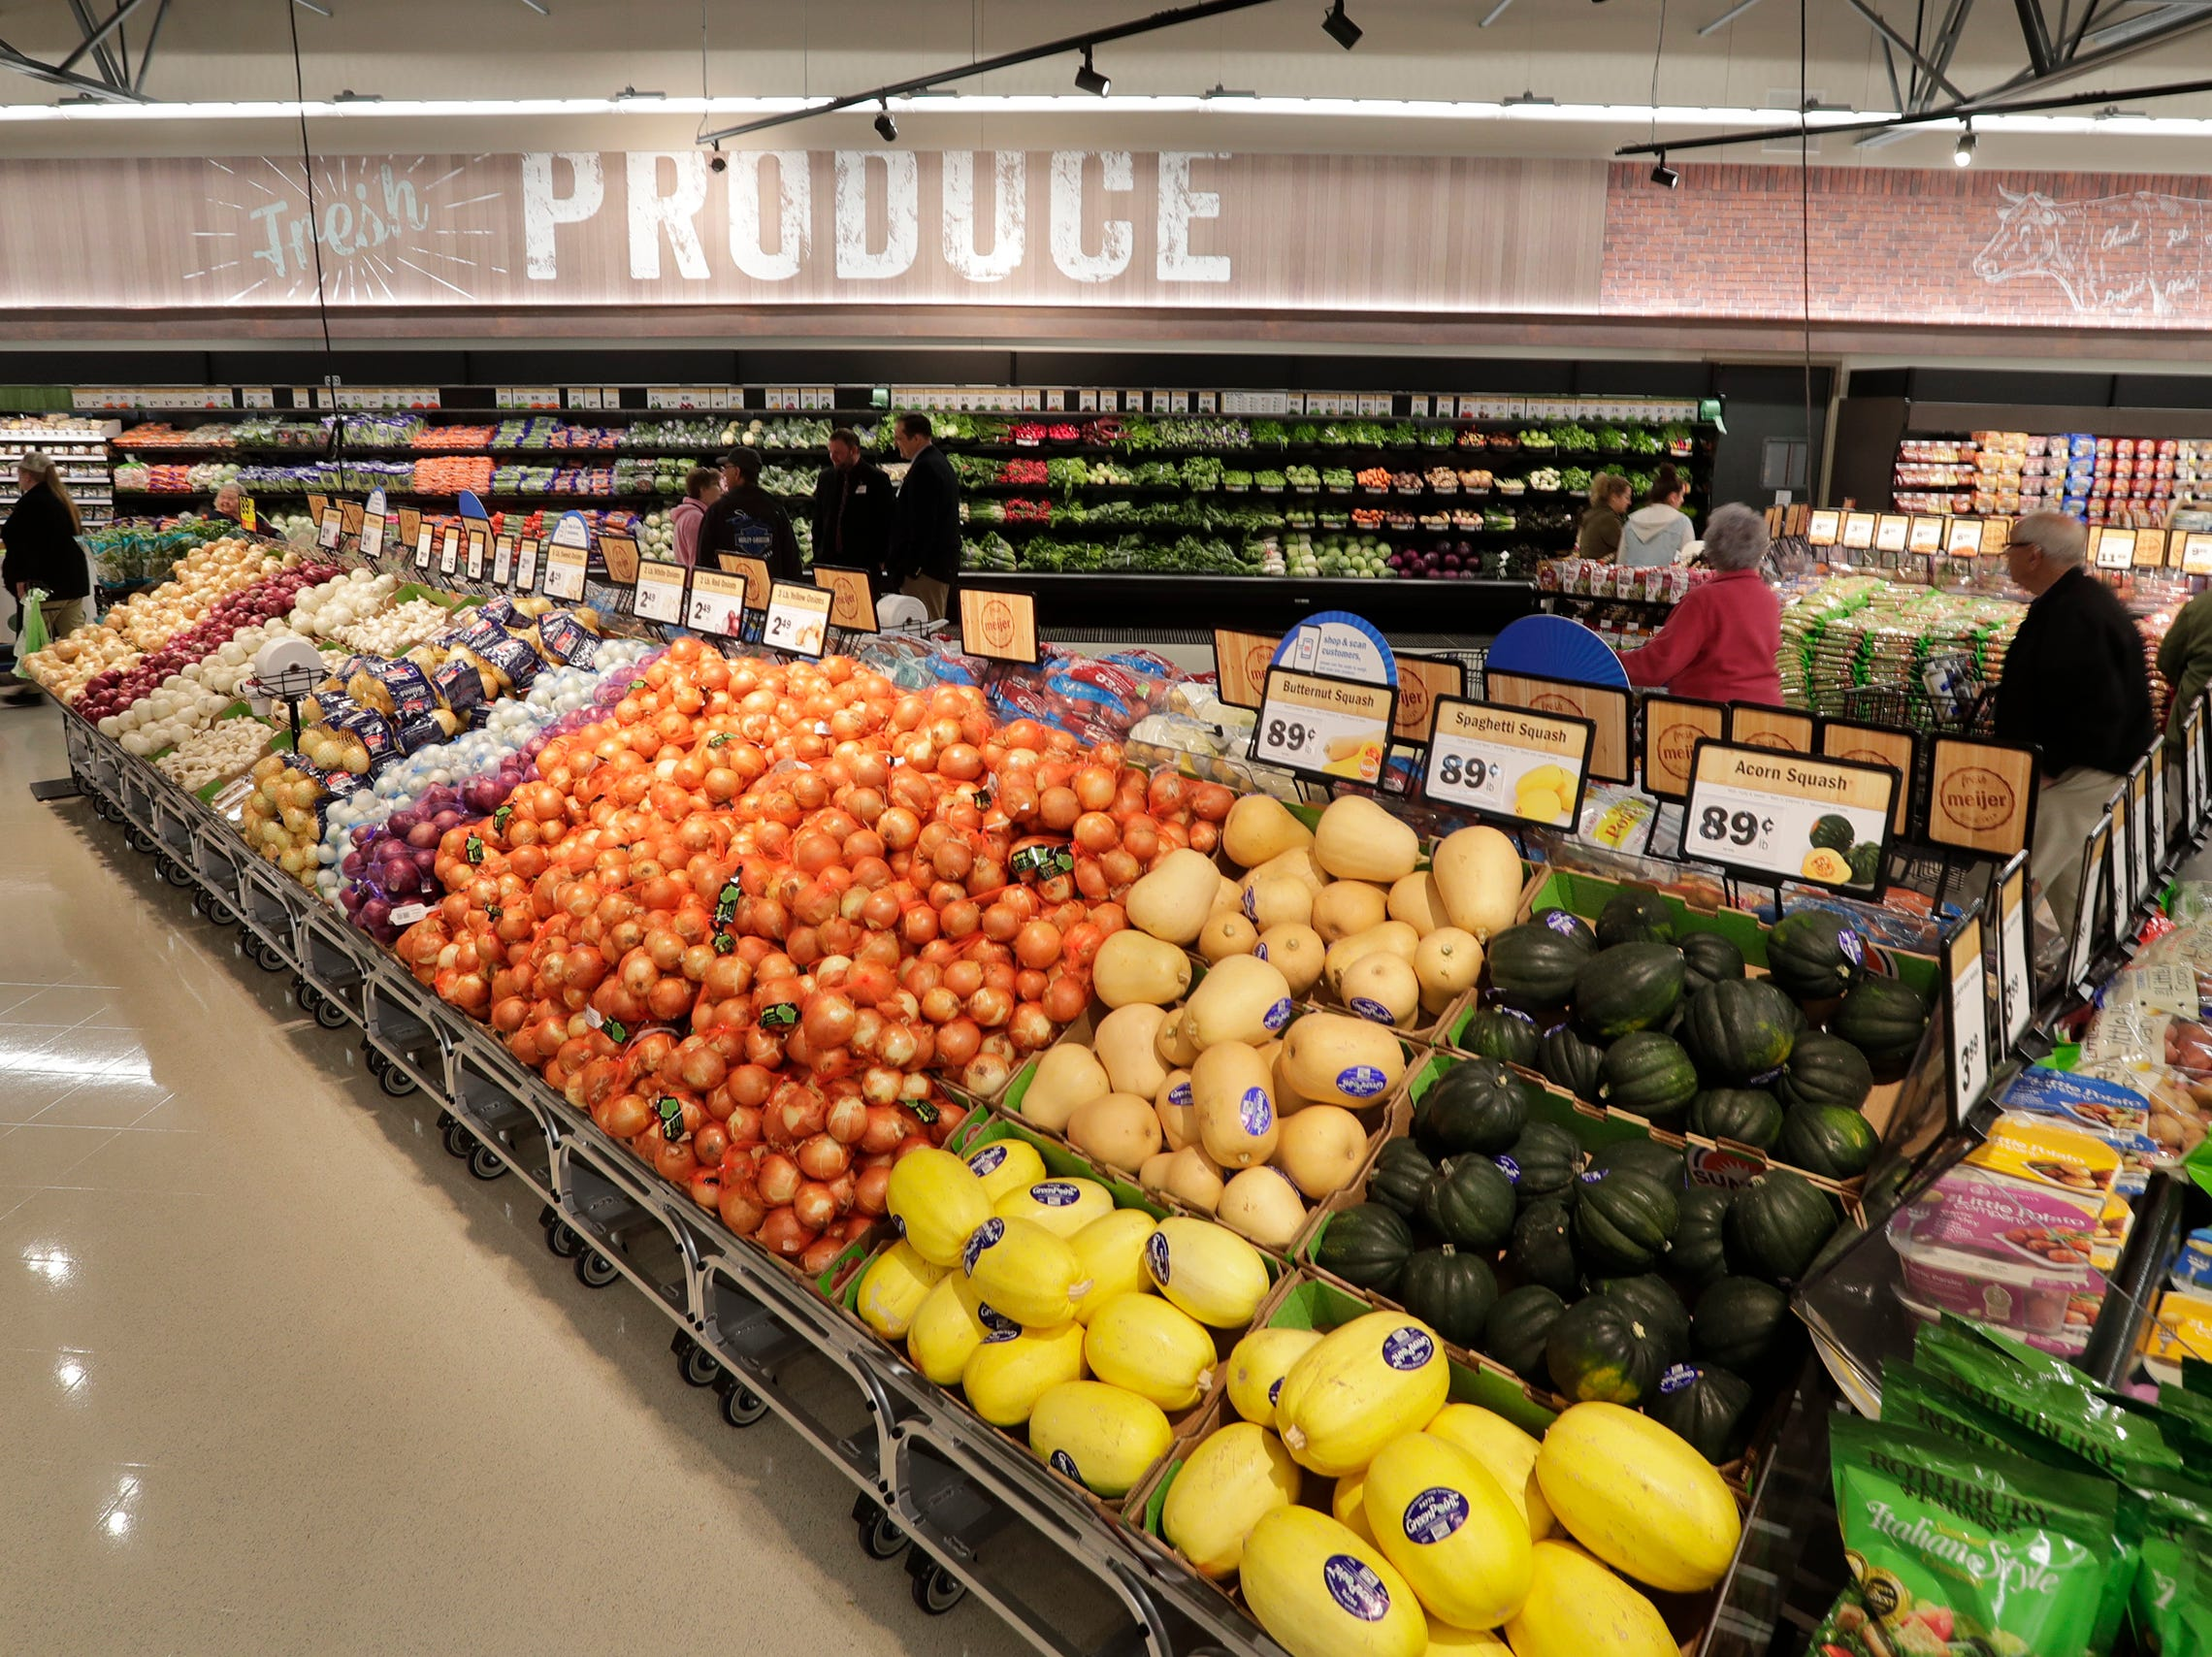 A view of the produce area at Meijer, Thursday April 25, 2019, in Sheboygan, Wis. The 155,000-square-foot supercenter has 300 employees on opening day.